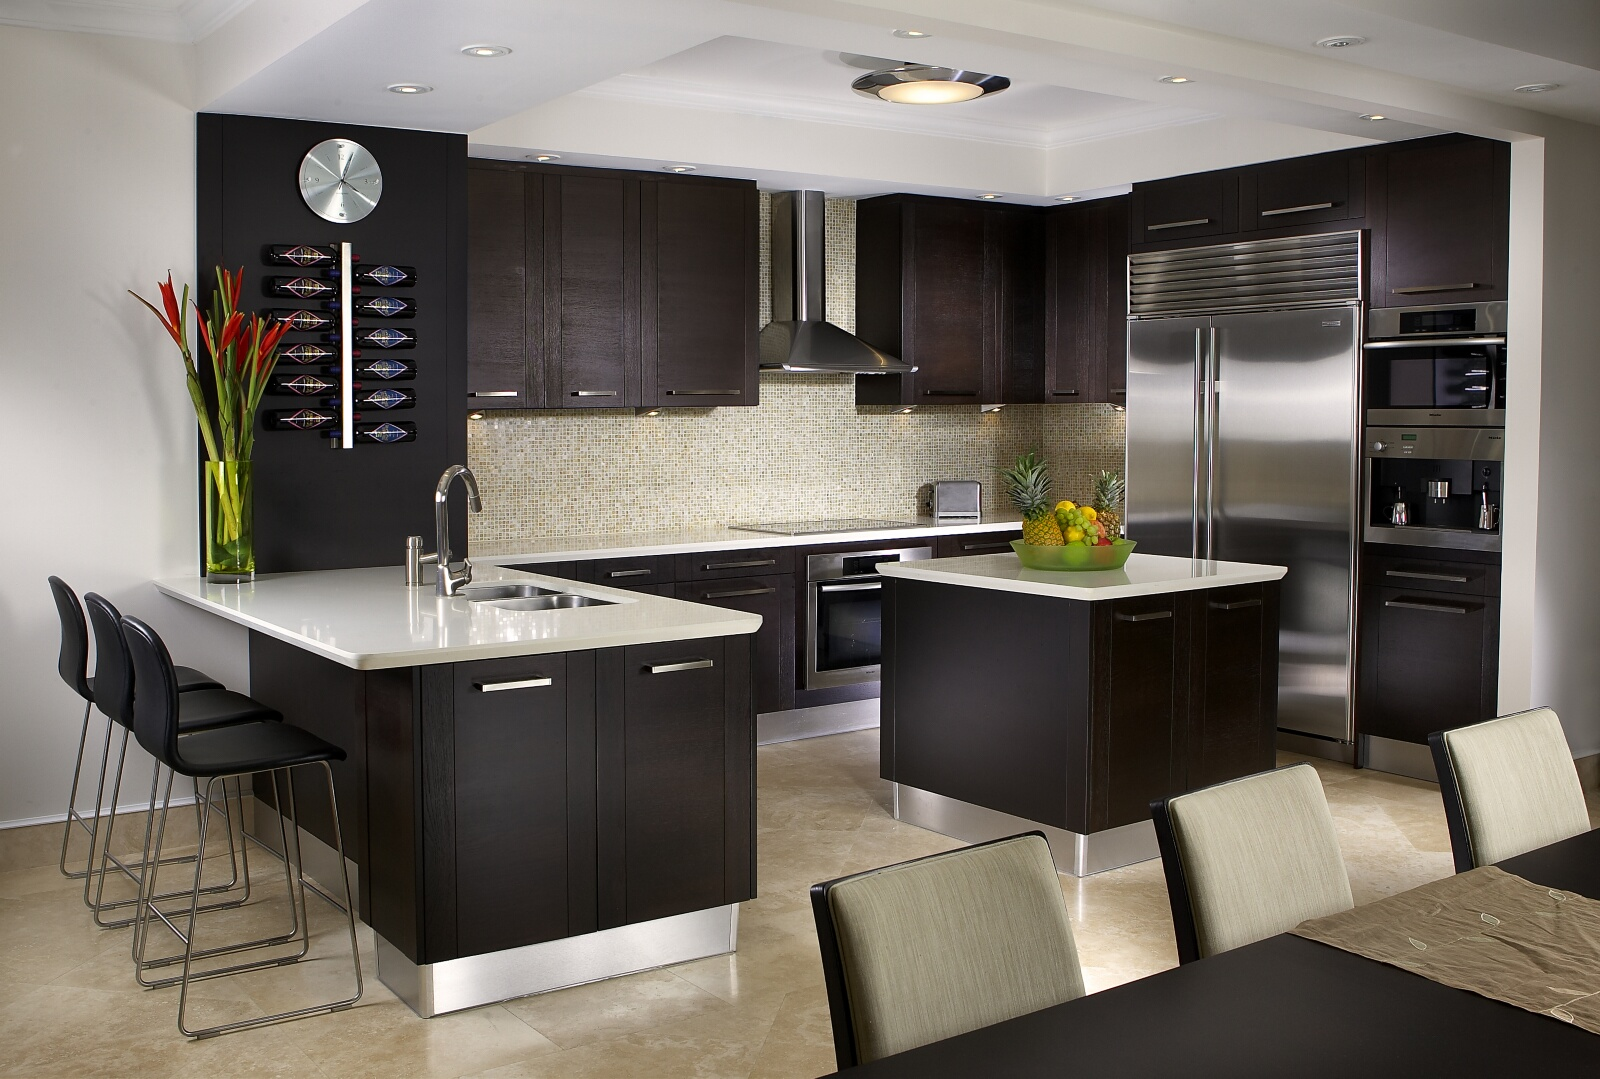 kitchen interior design services miami florida. Black Bedroom Furniture Sets. Home Design Ideas